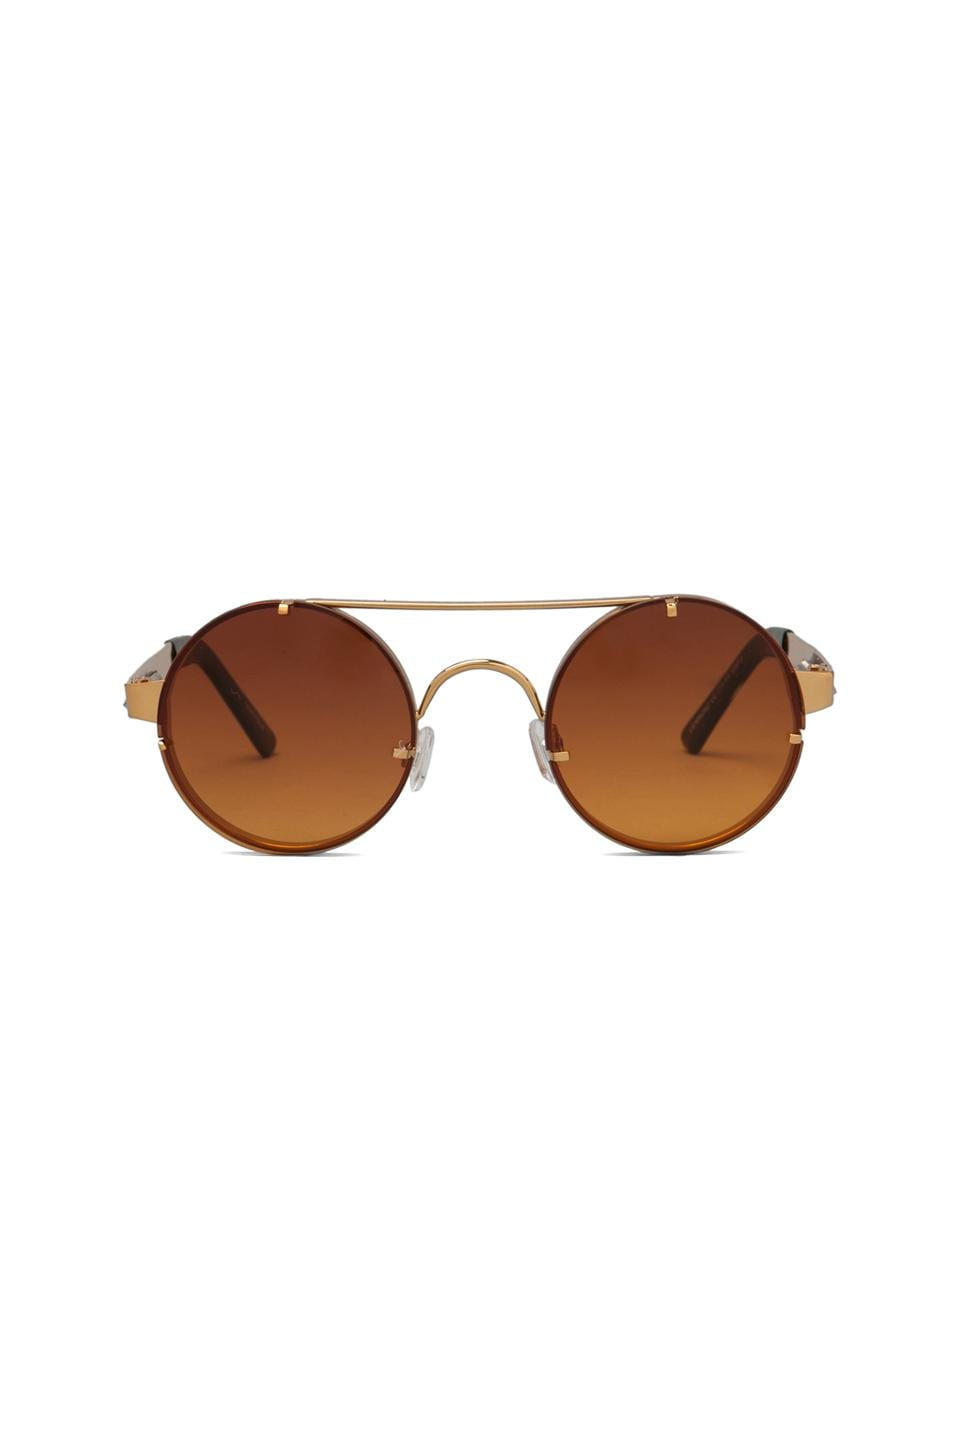 Spitfire Lennon 2 in Gold w/ Brown